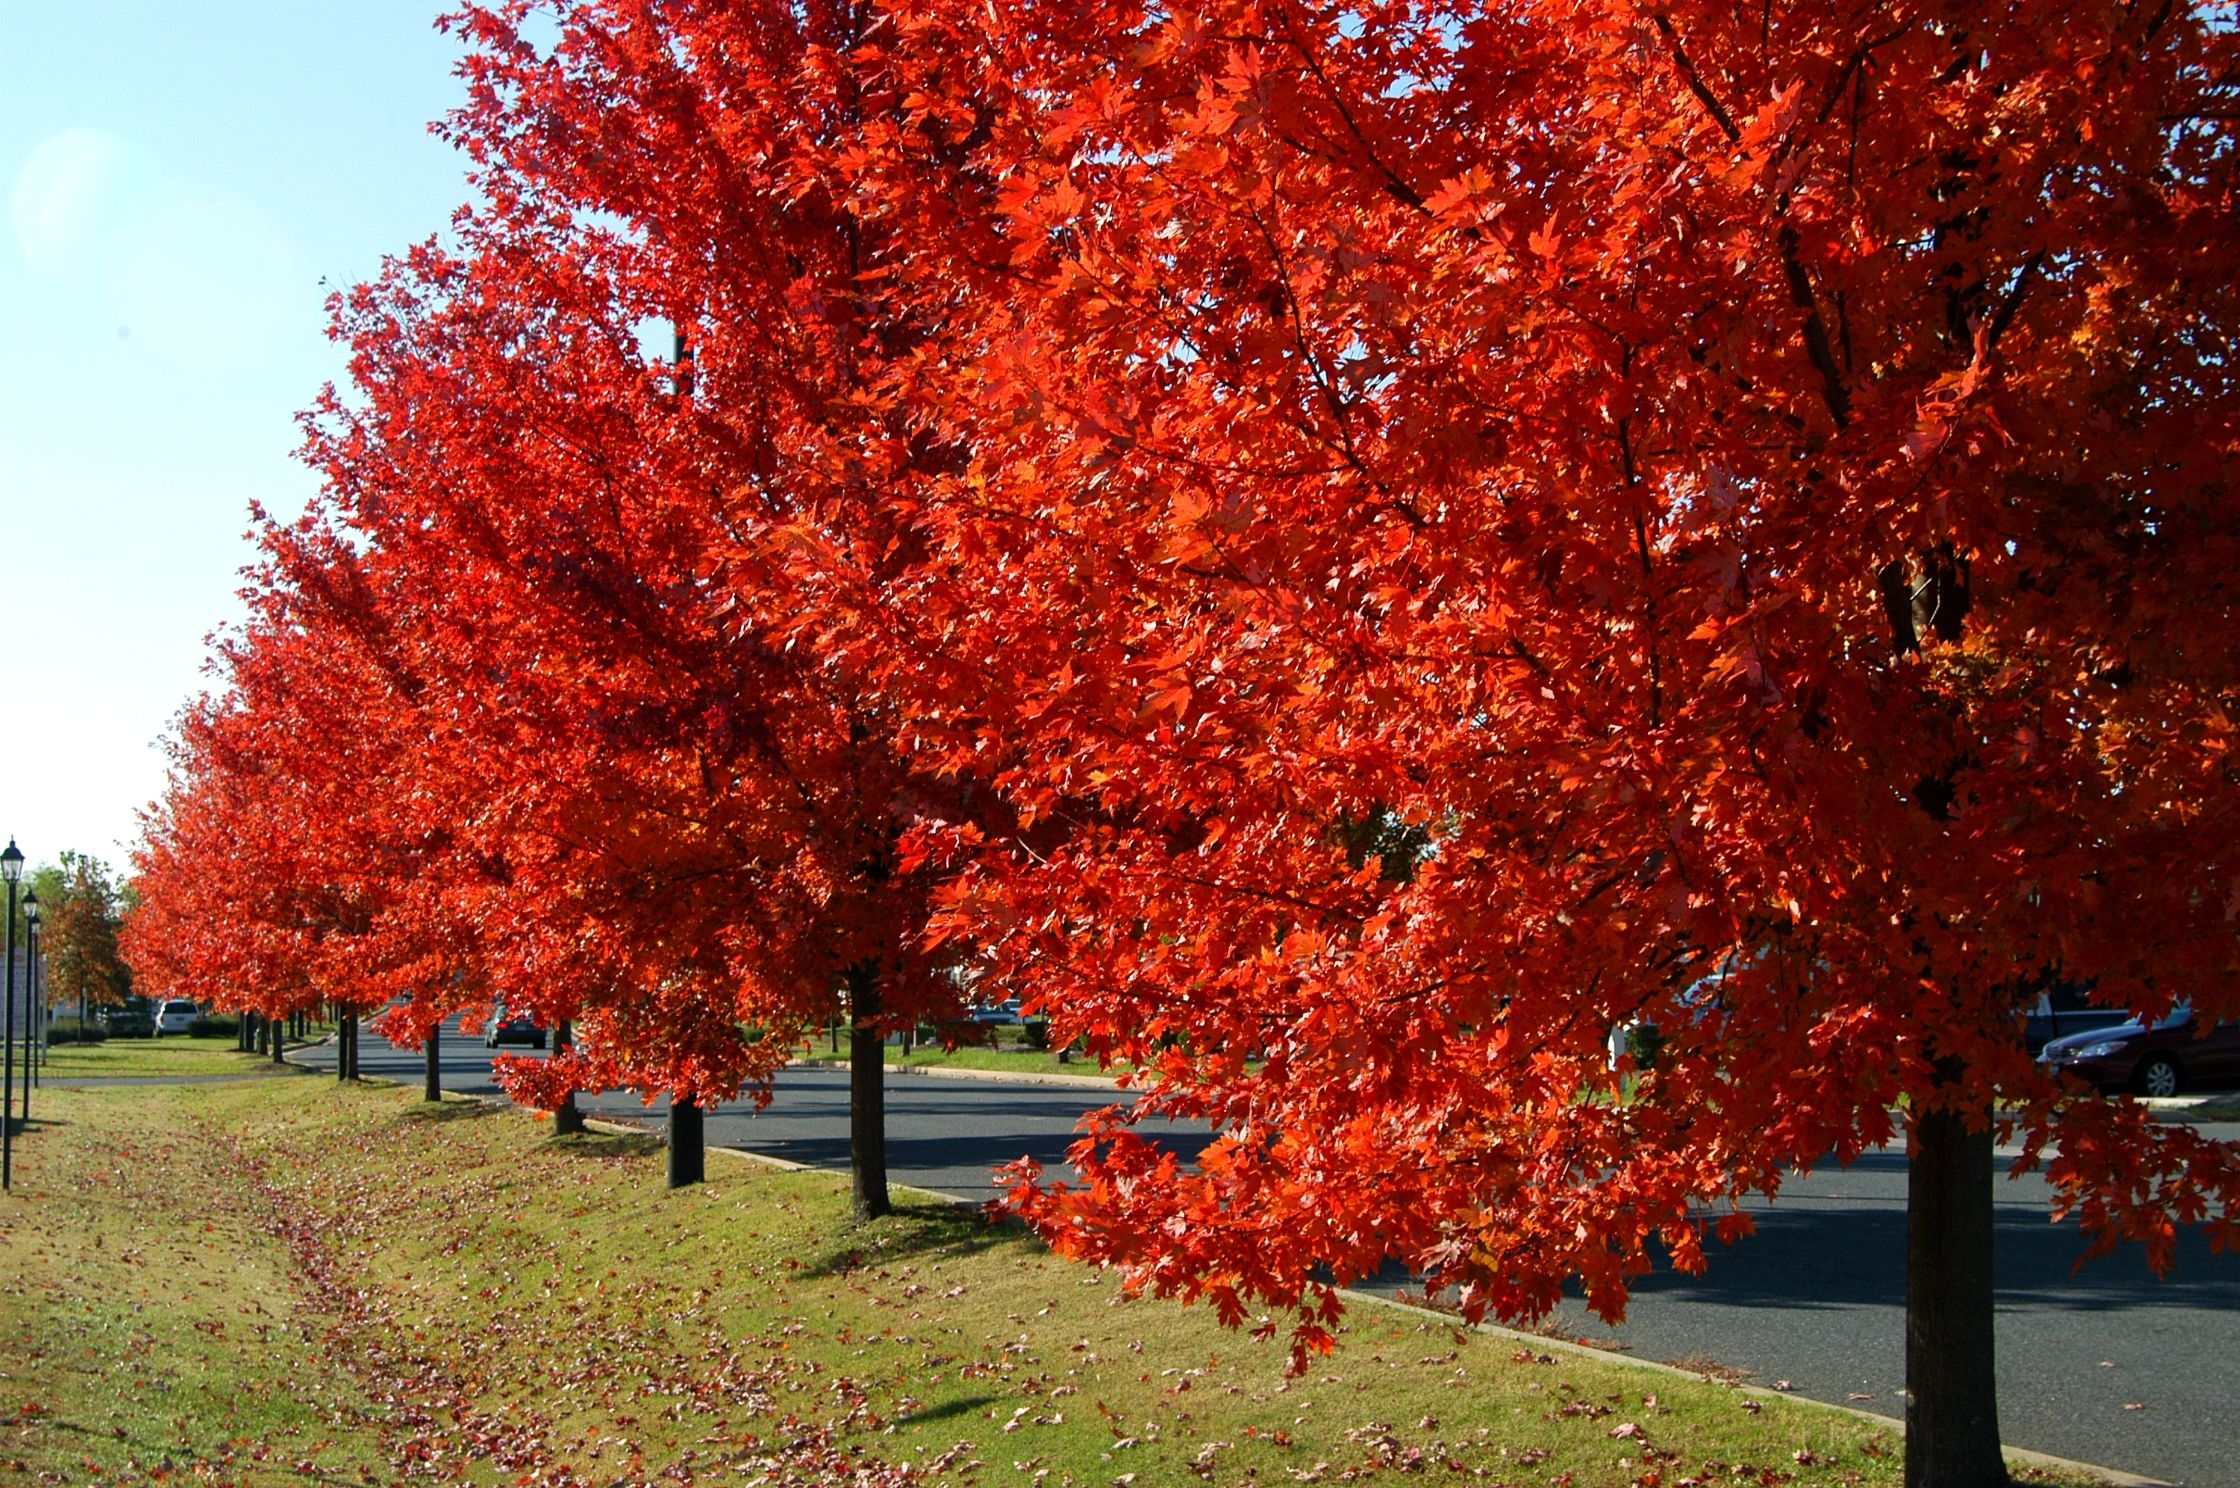 Ahorn October Glory Autumn Blaze Maples What Are The Benefits Outdoor